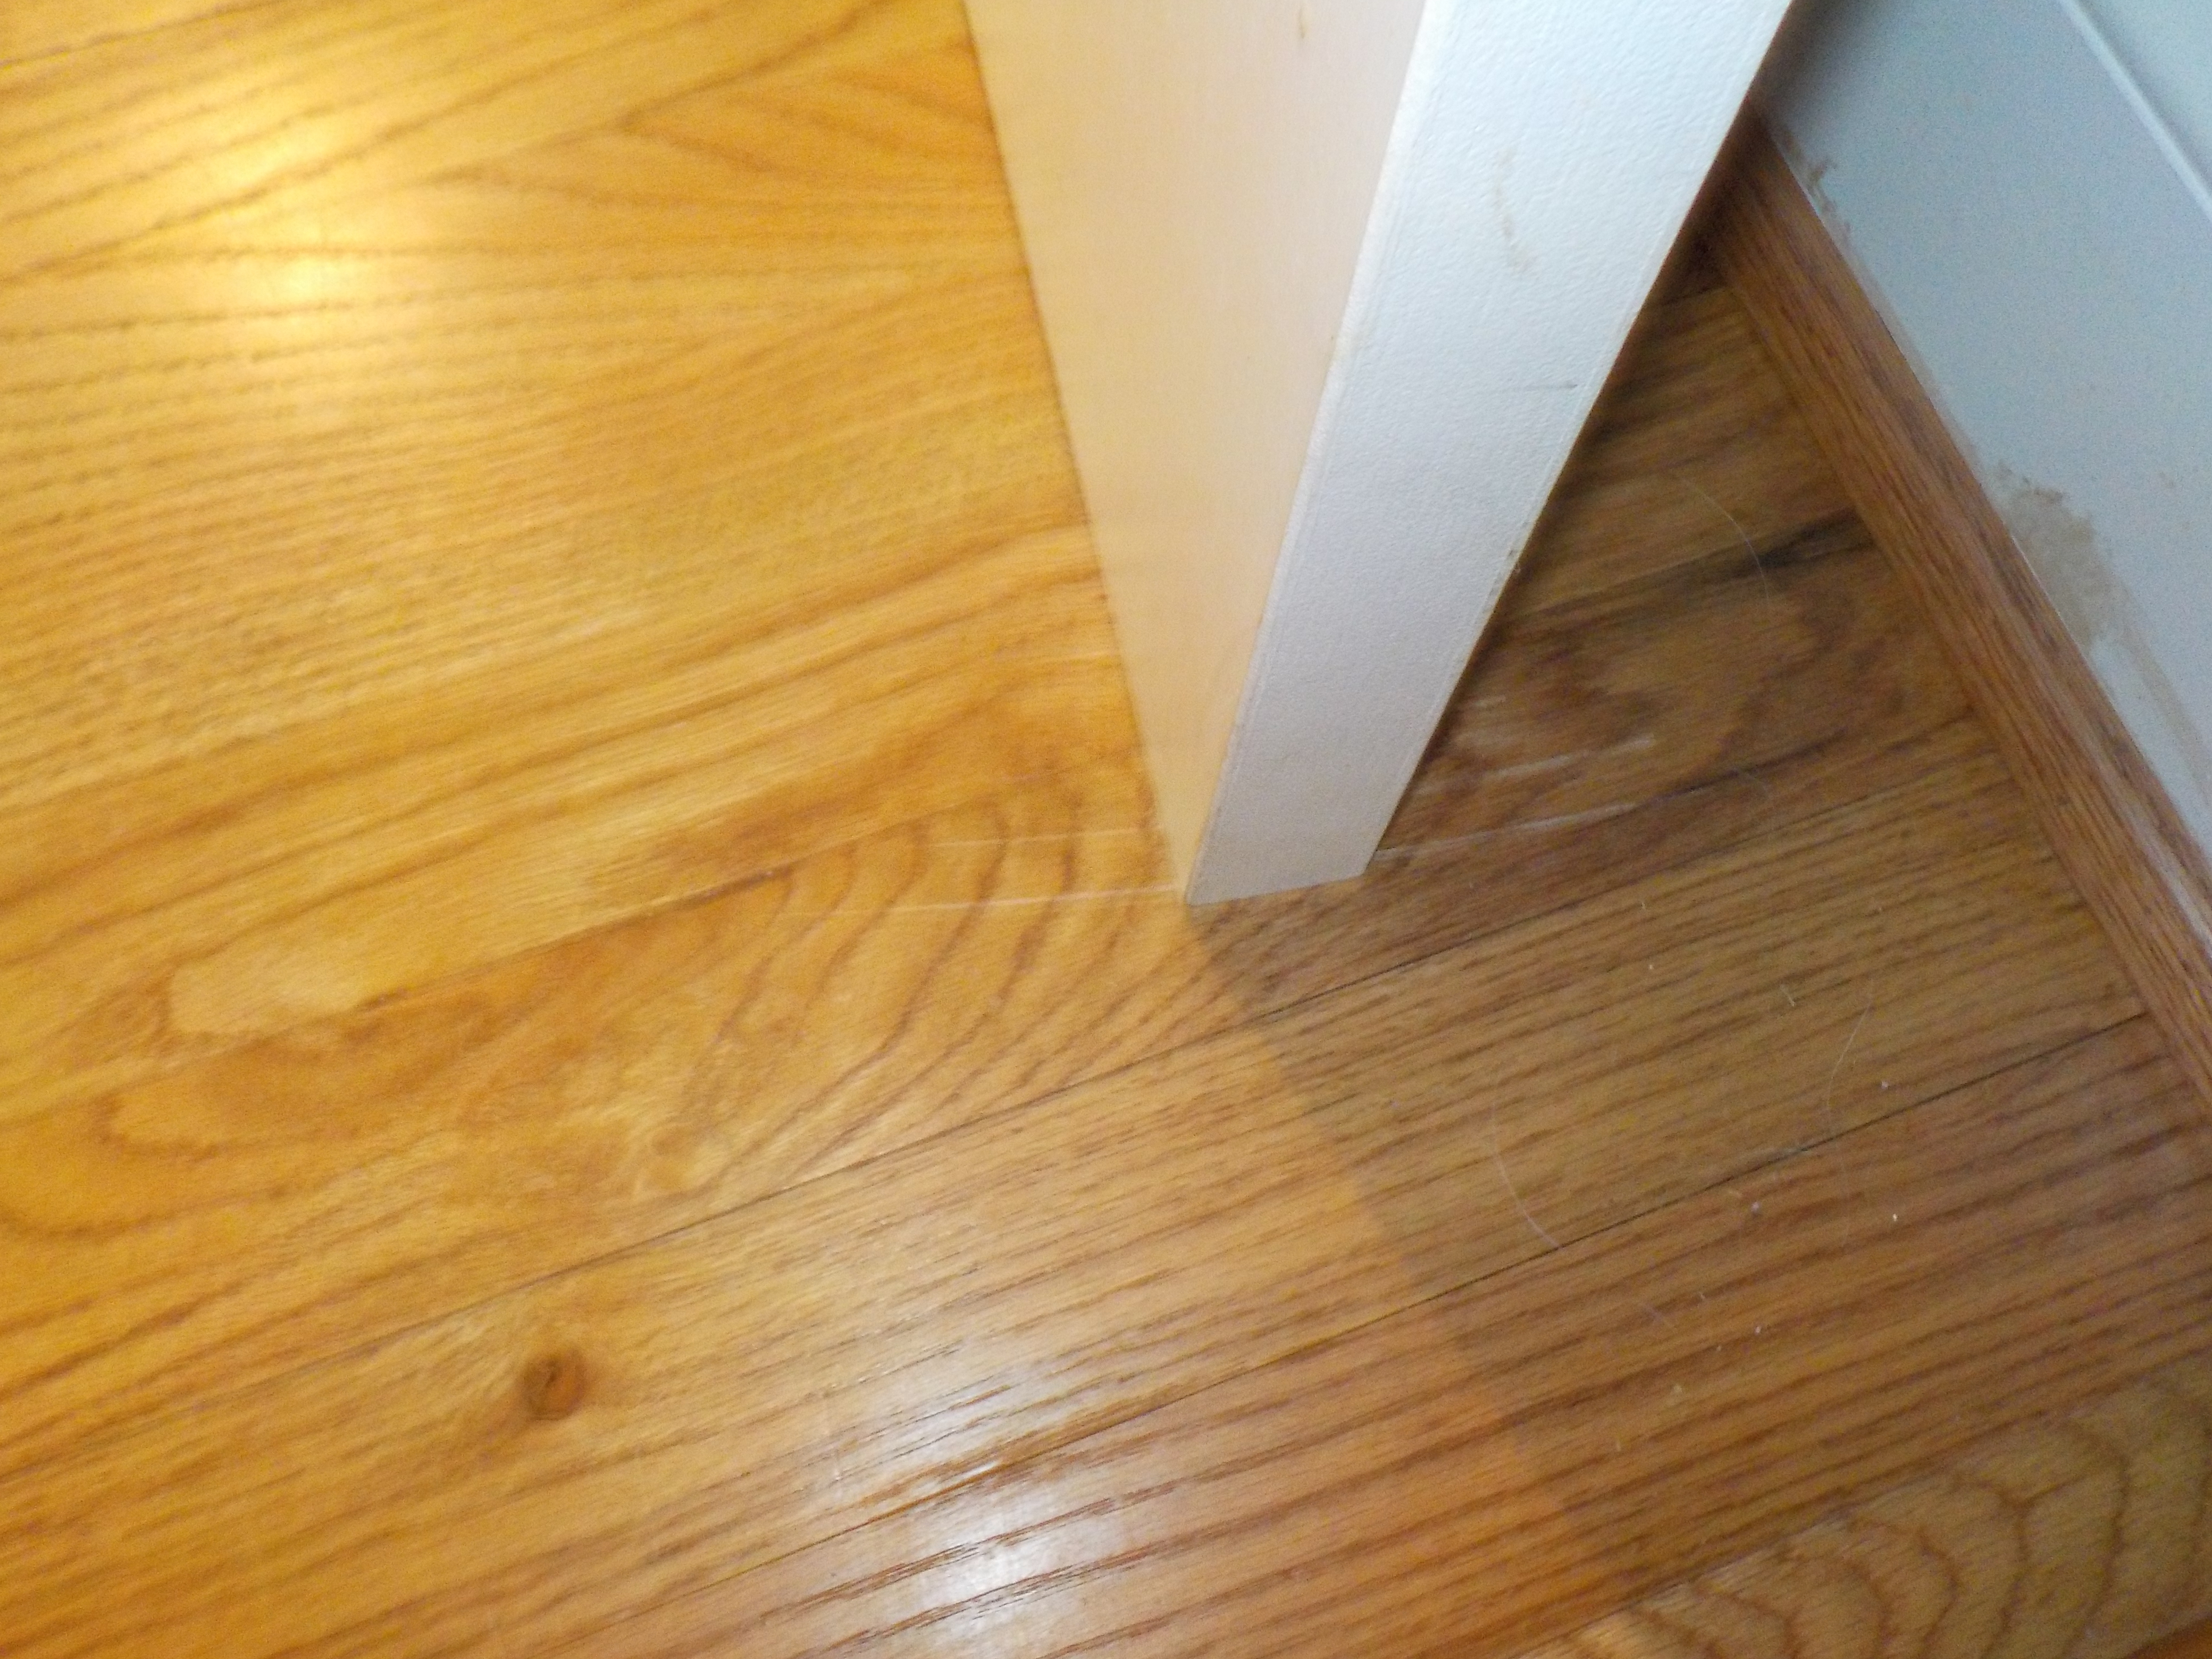 Door rubbing floor